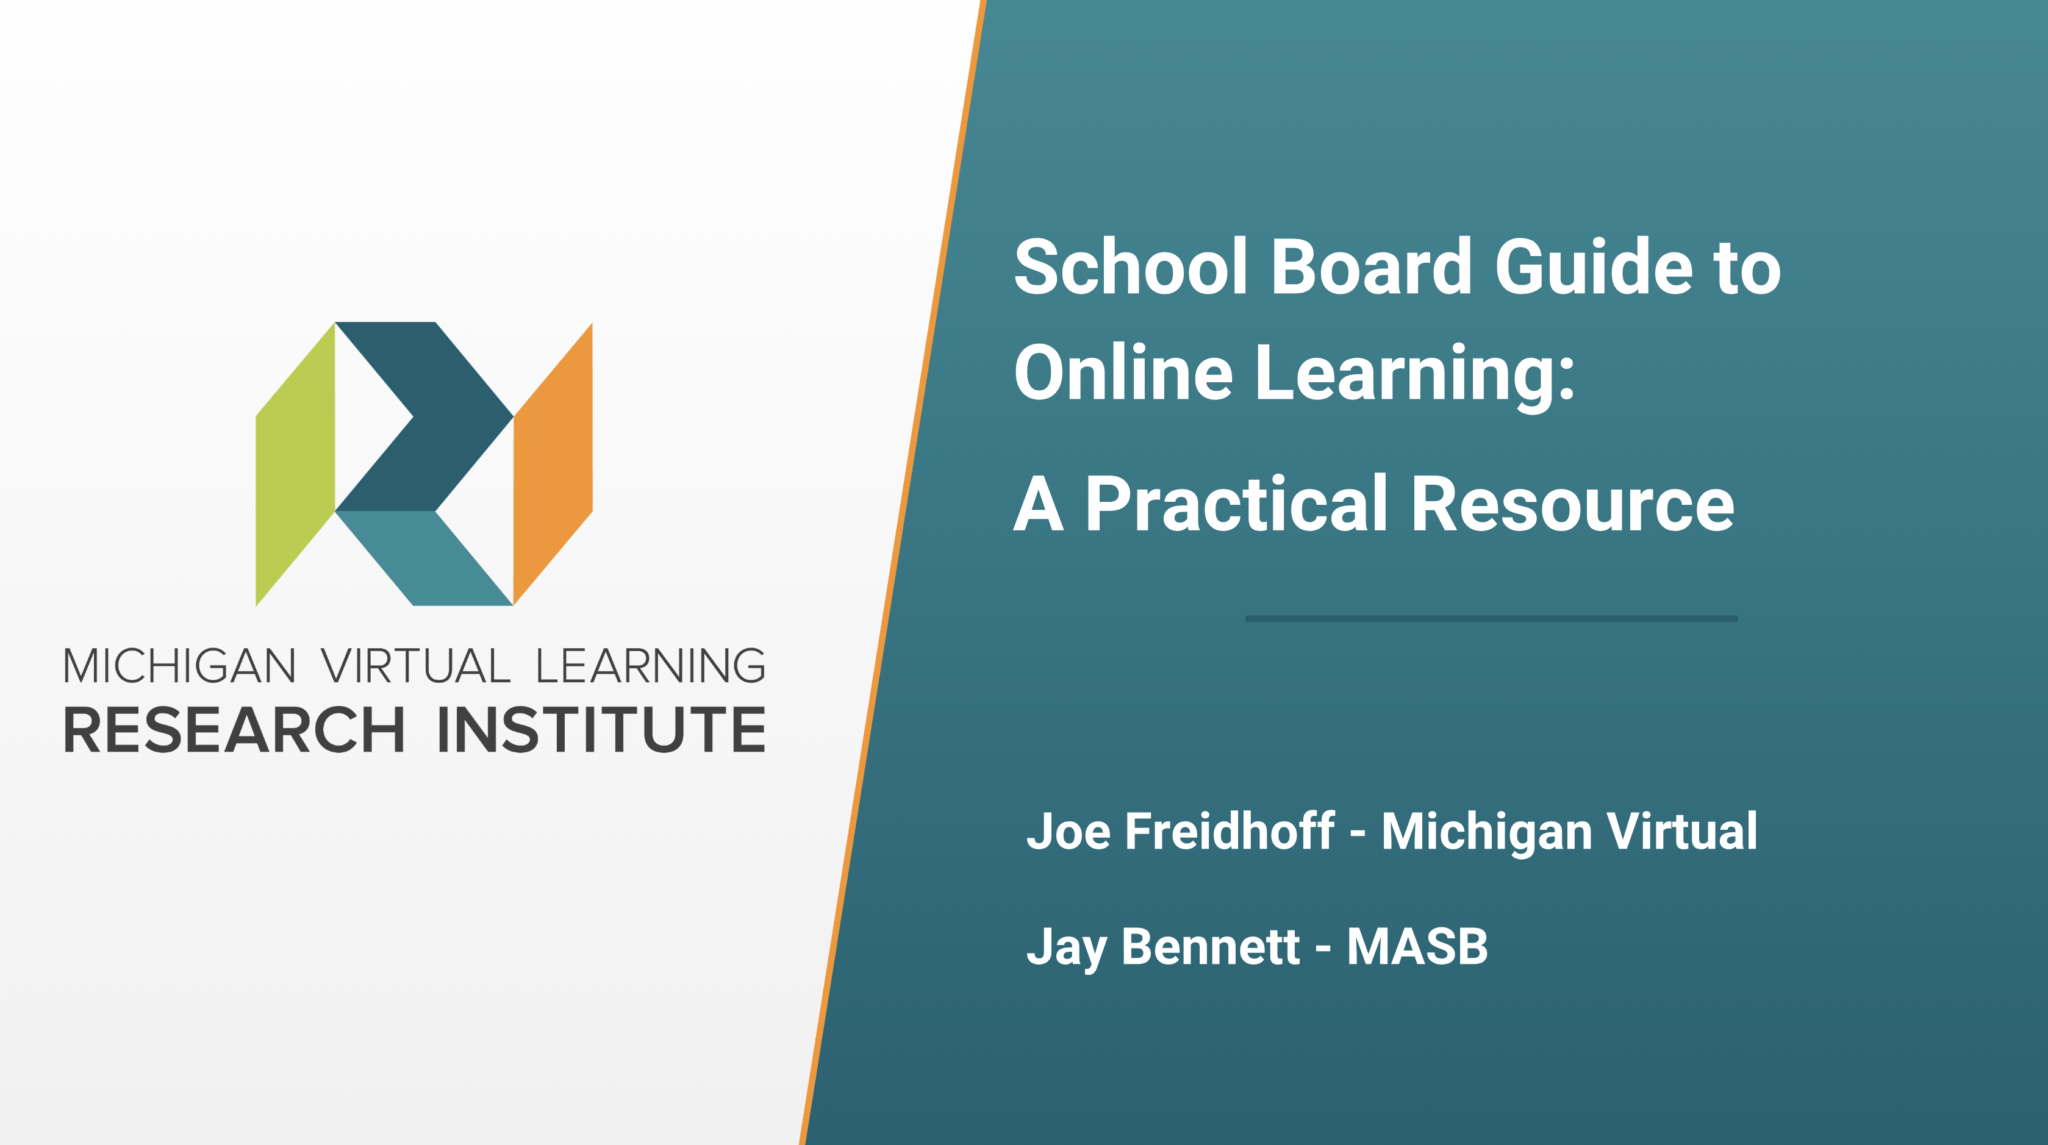 Presentation Cover for MASB Annual Conference - School Board Guide to Online Learning: A Practical Resource